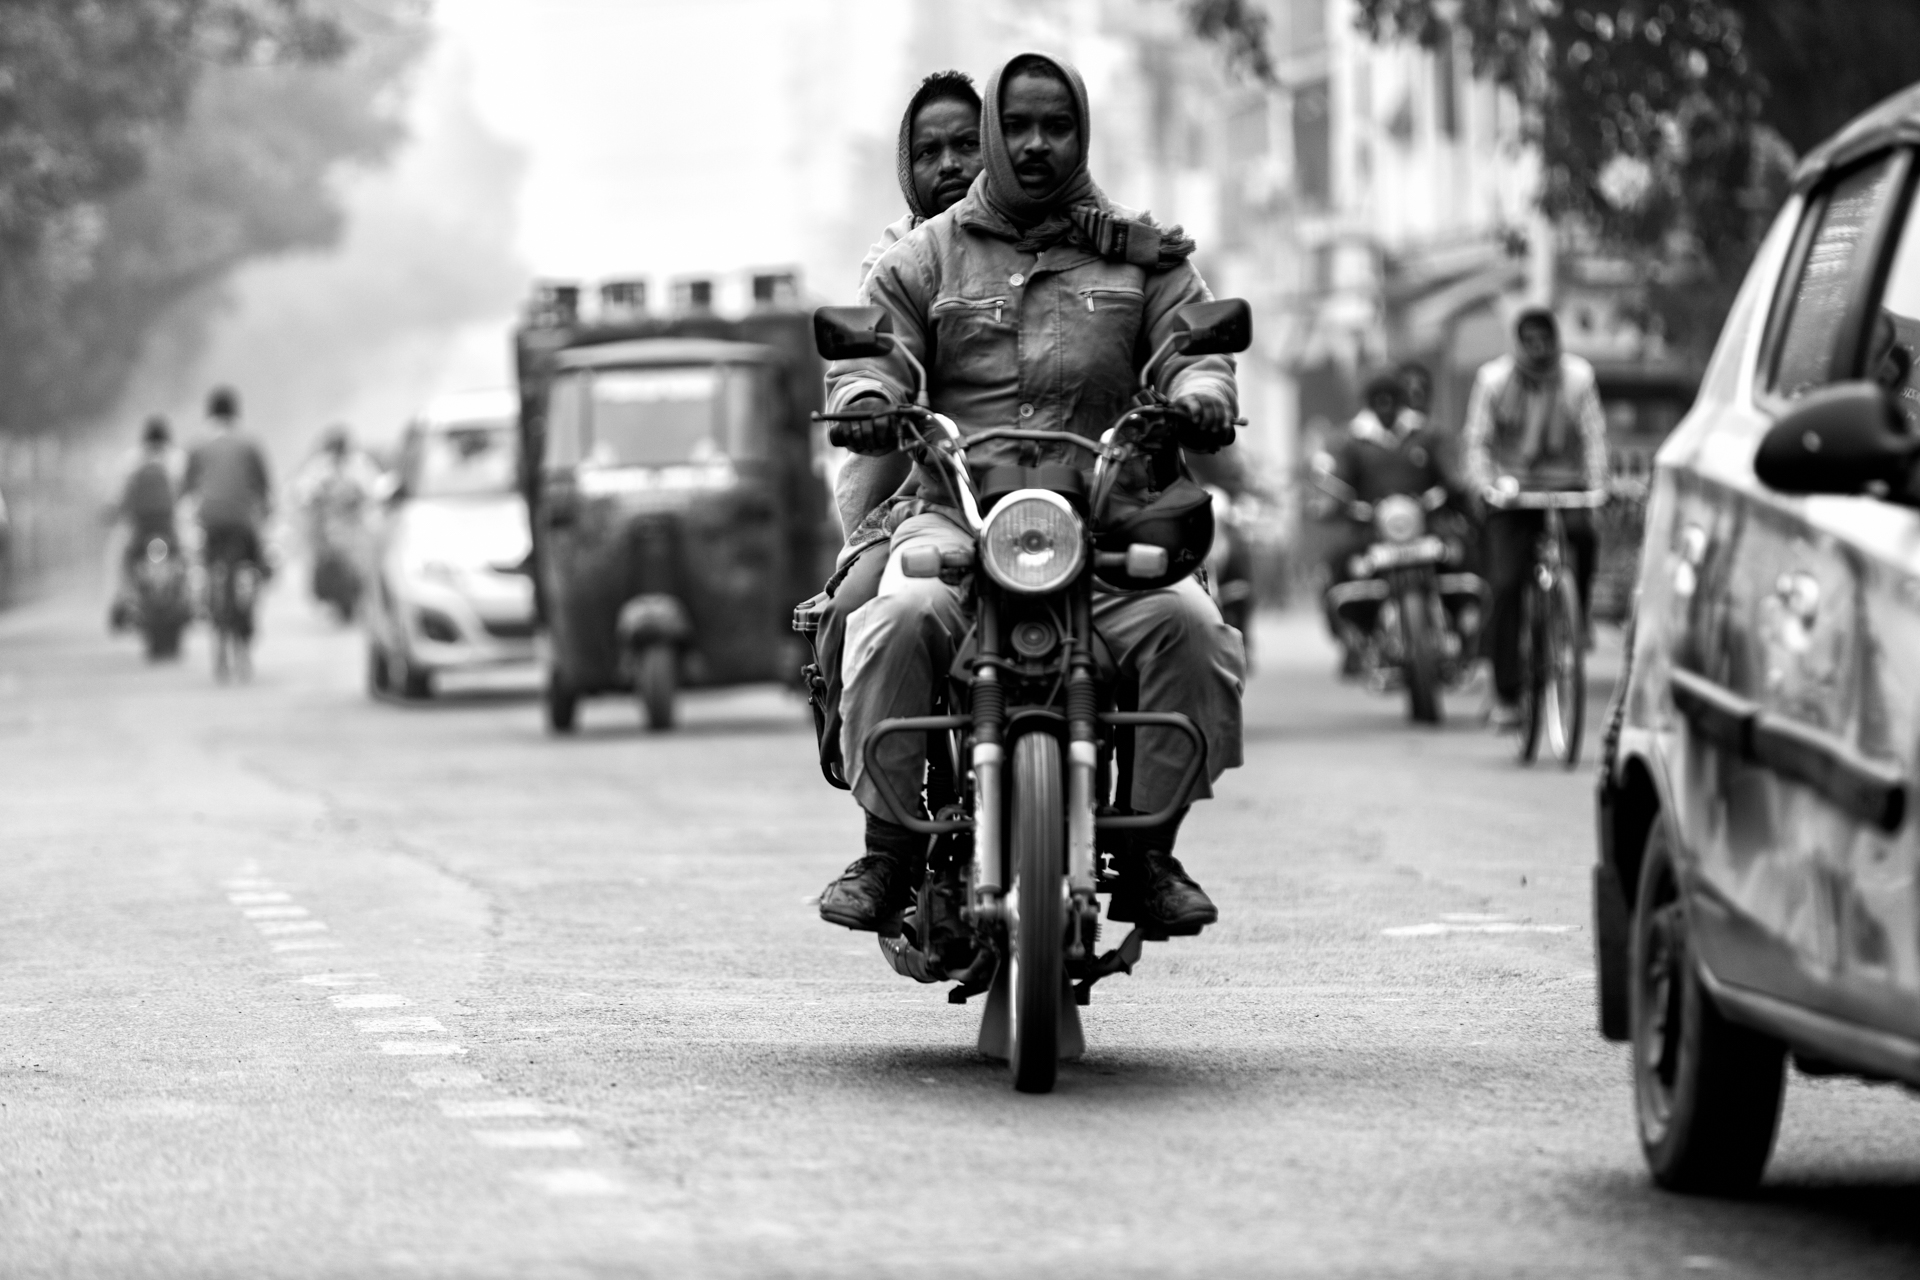 India-moto-black&white